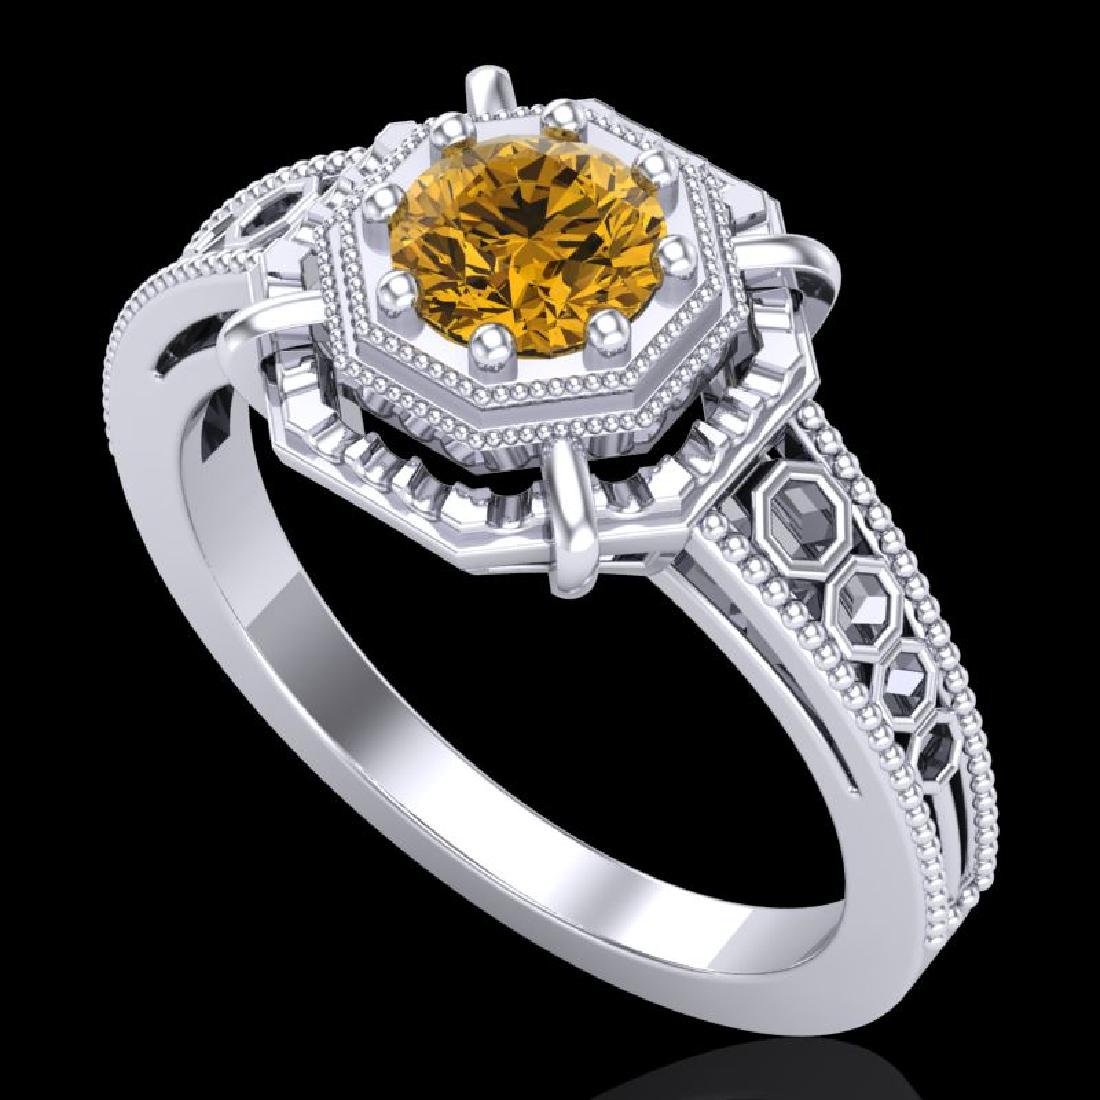 0.53 CTW Intense Fancy Yellow Diamond Engagement Art